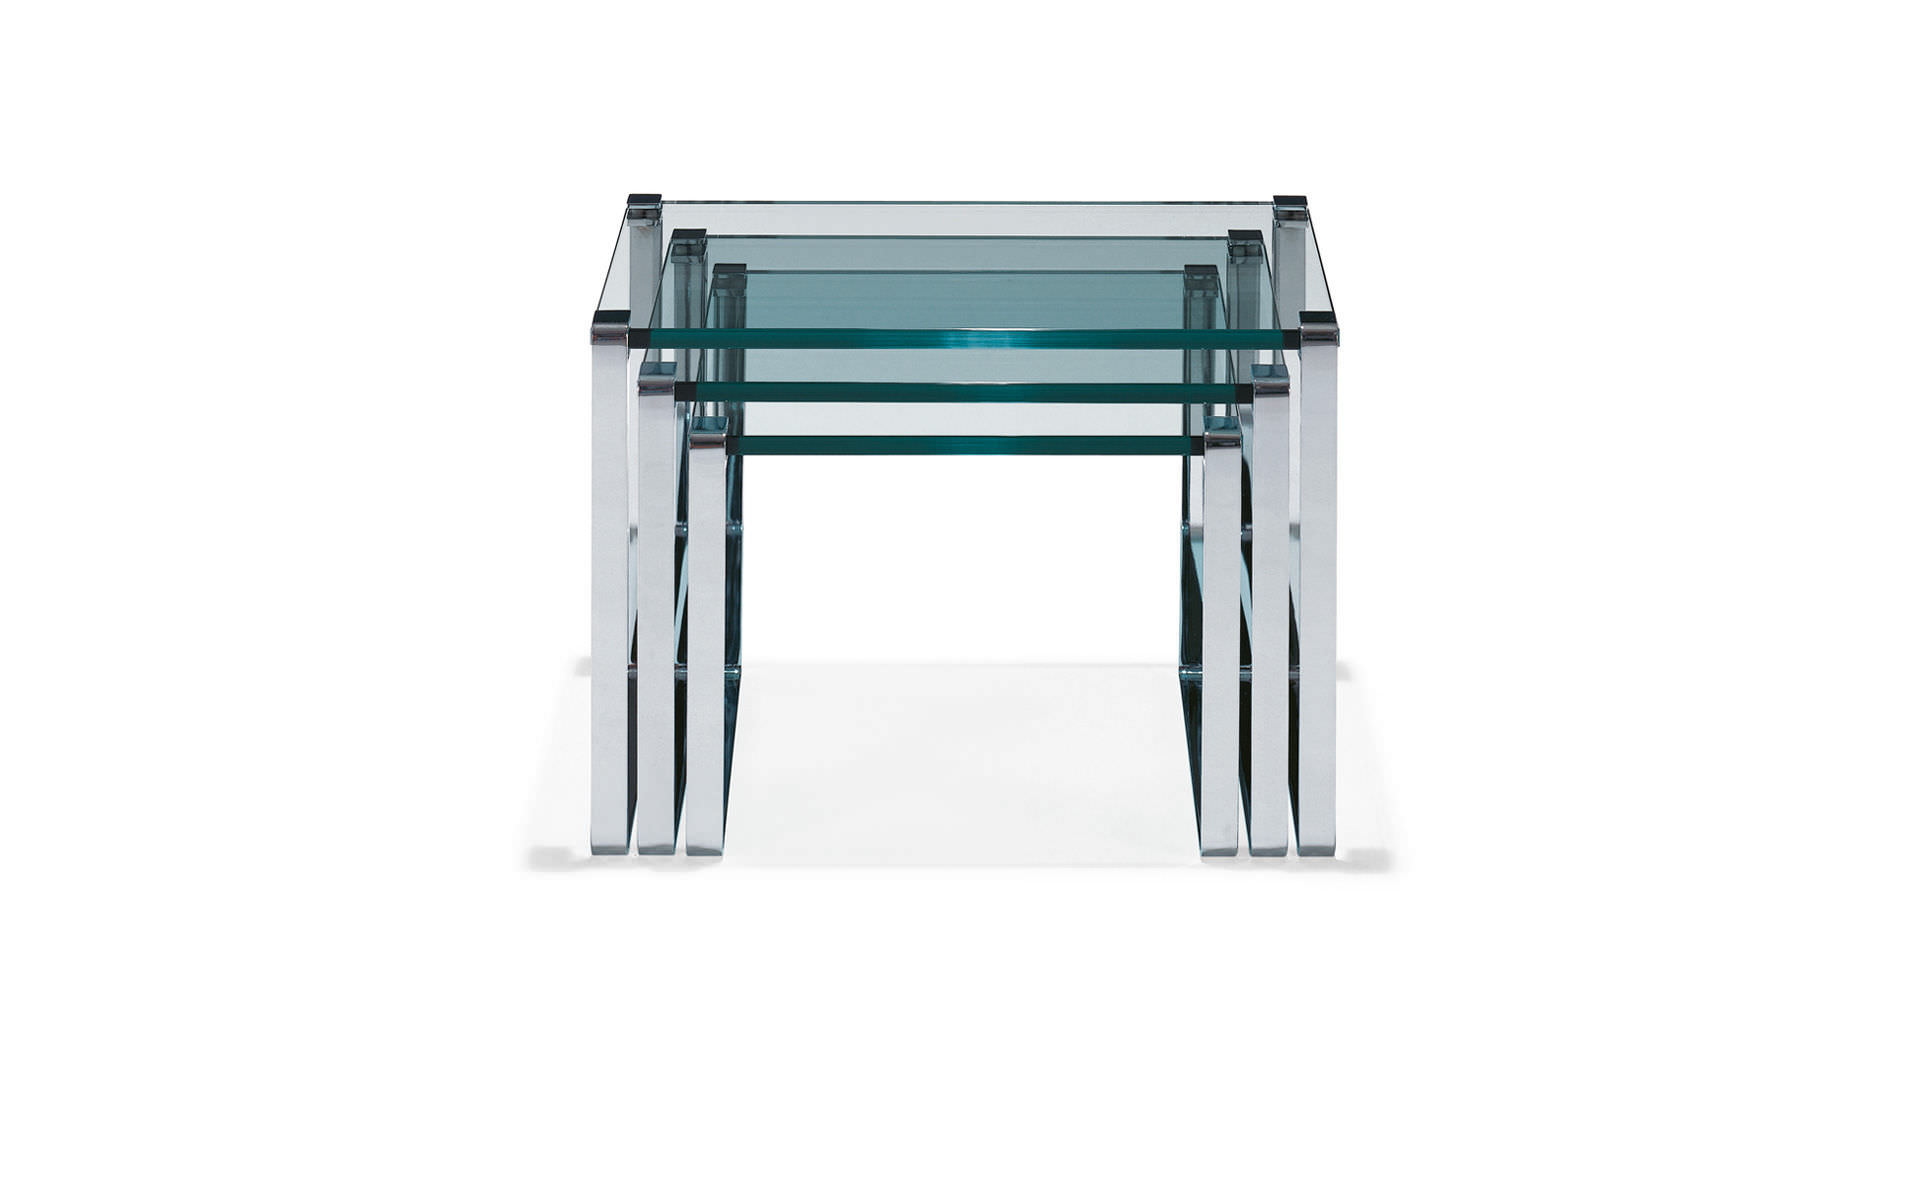 contemporary coffee table  glass  square   klassik by peter  -  contemporary coffee table  glass  square  klassik by peterdraenert draenert